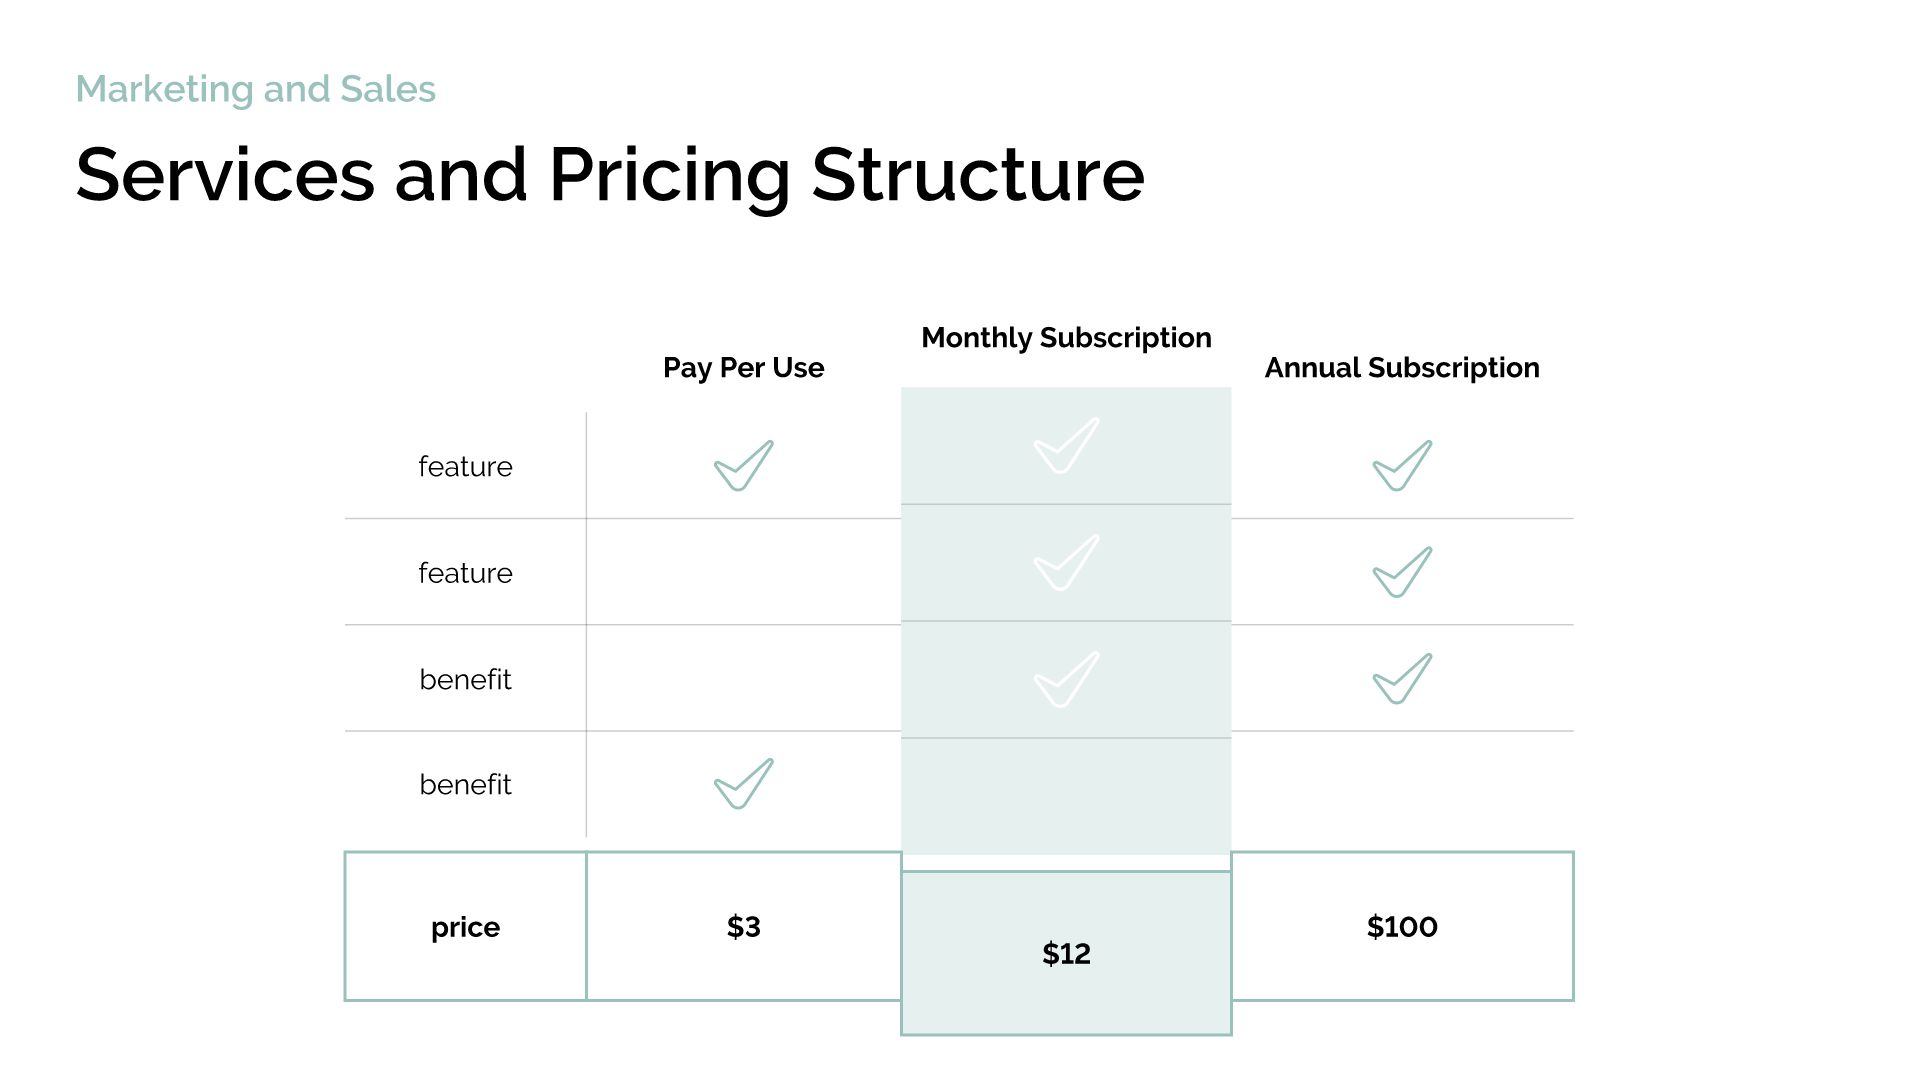 SERVICES/PRICING